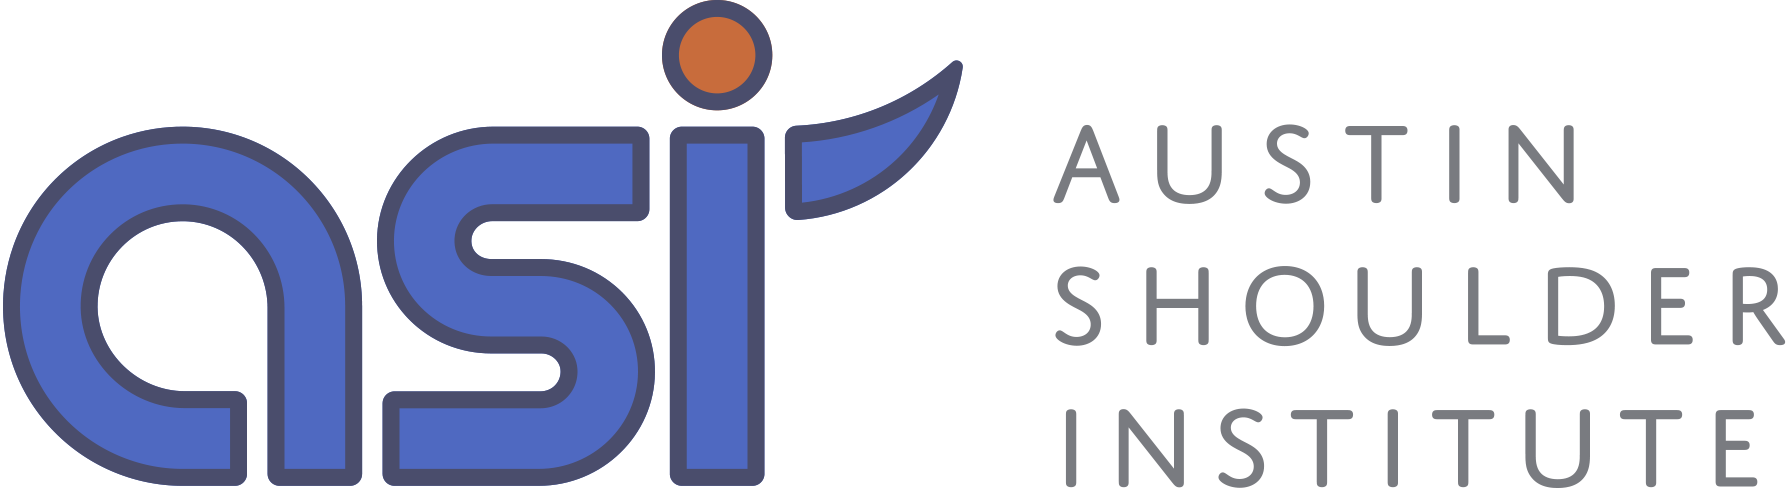 ASI Austin Shoulder Institute Logo Transparent Background